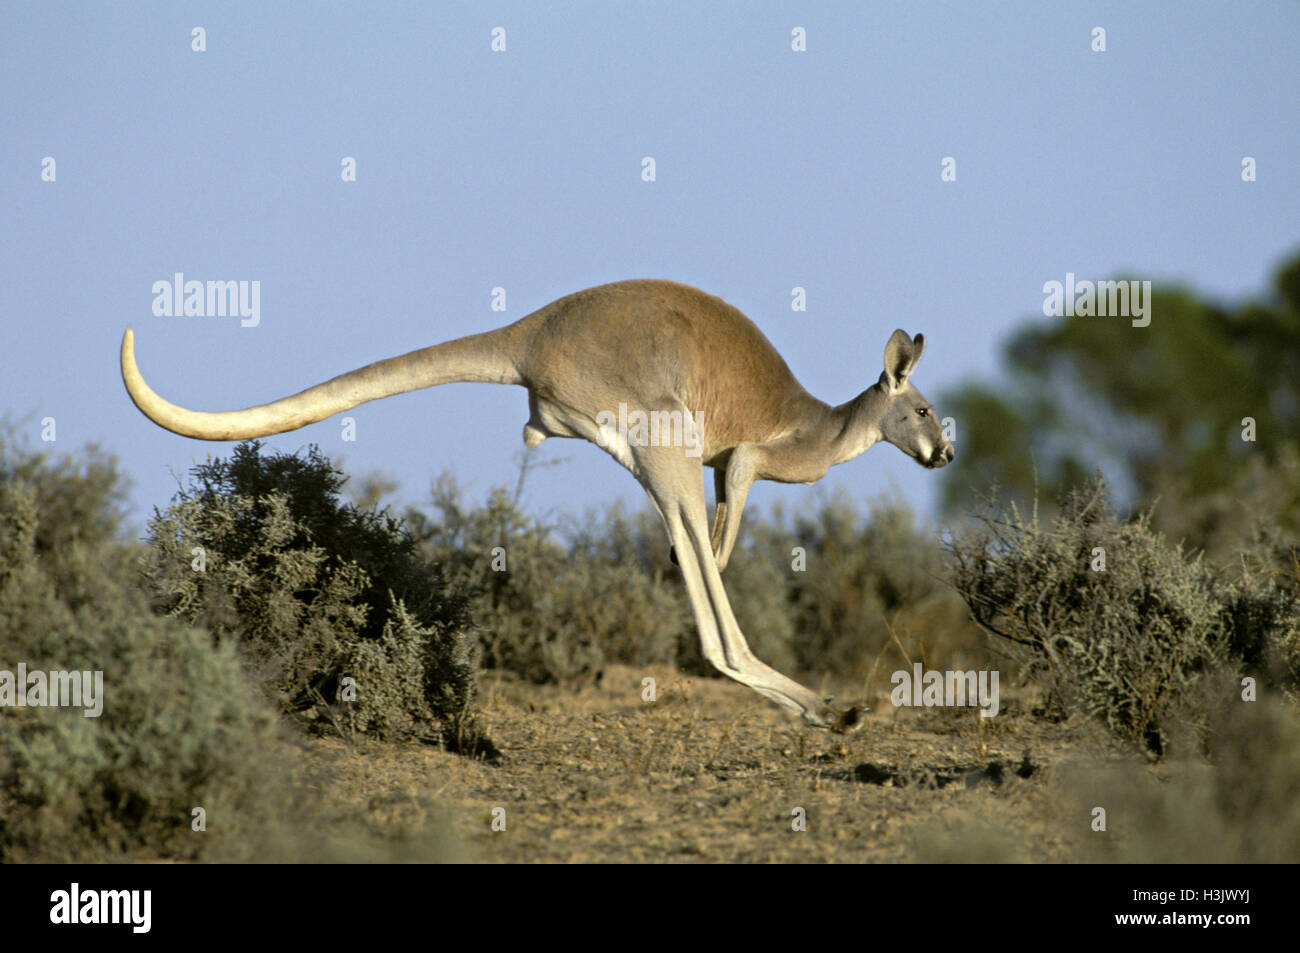 Red kangaroo (Macropus rufus), young male hopping. Kinchega National Park, far western New South Wales, Australia - Stock Image